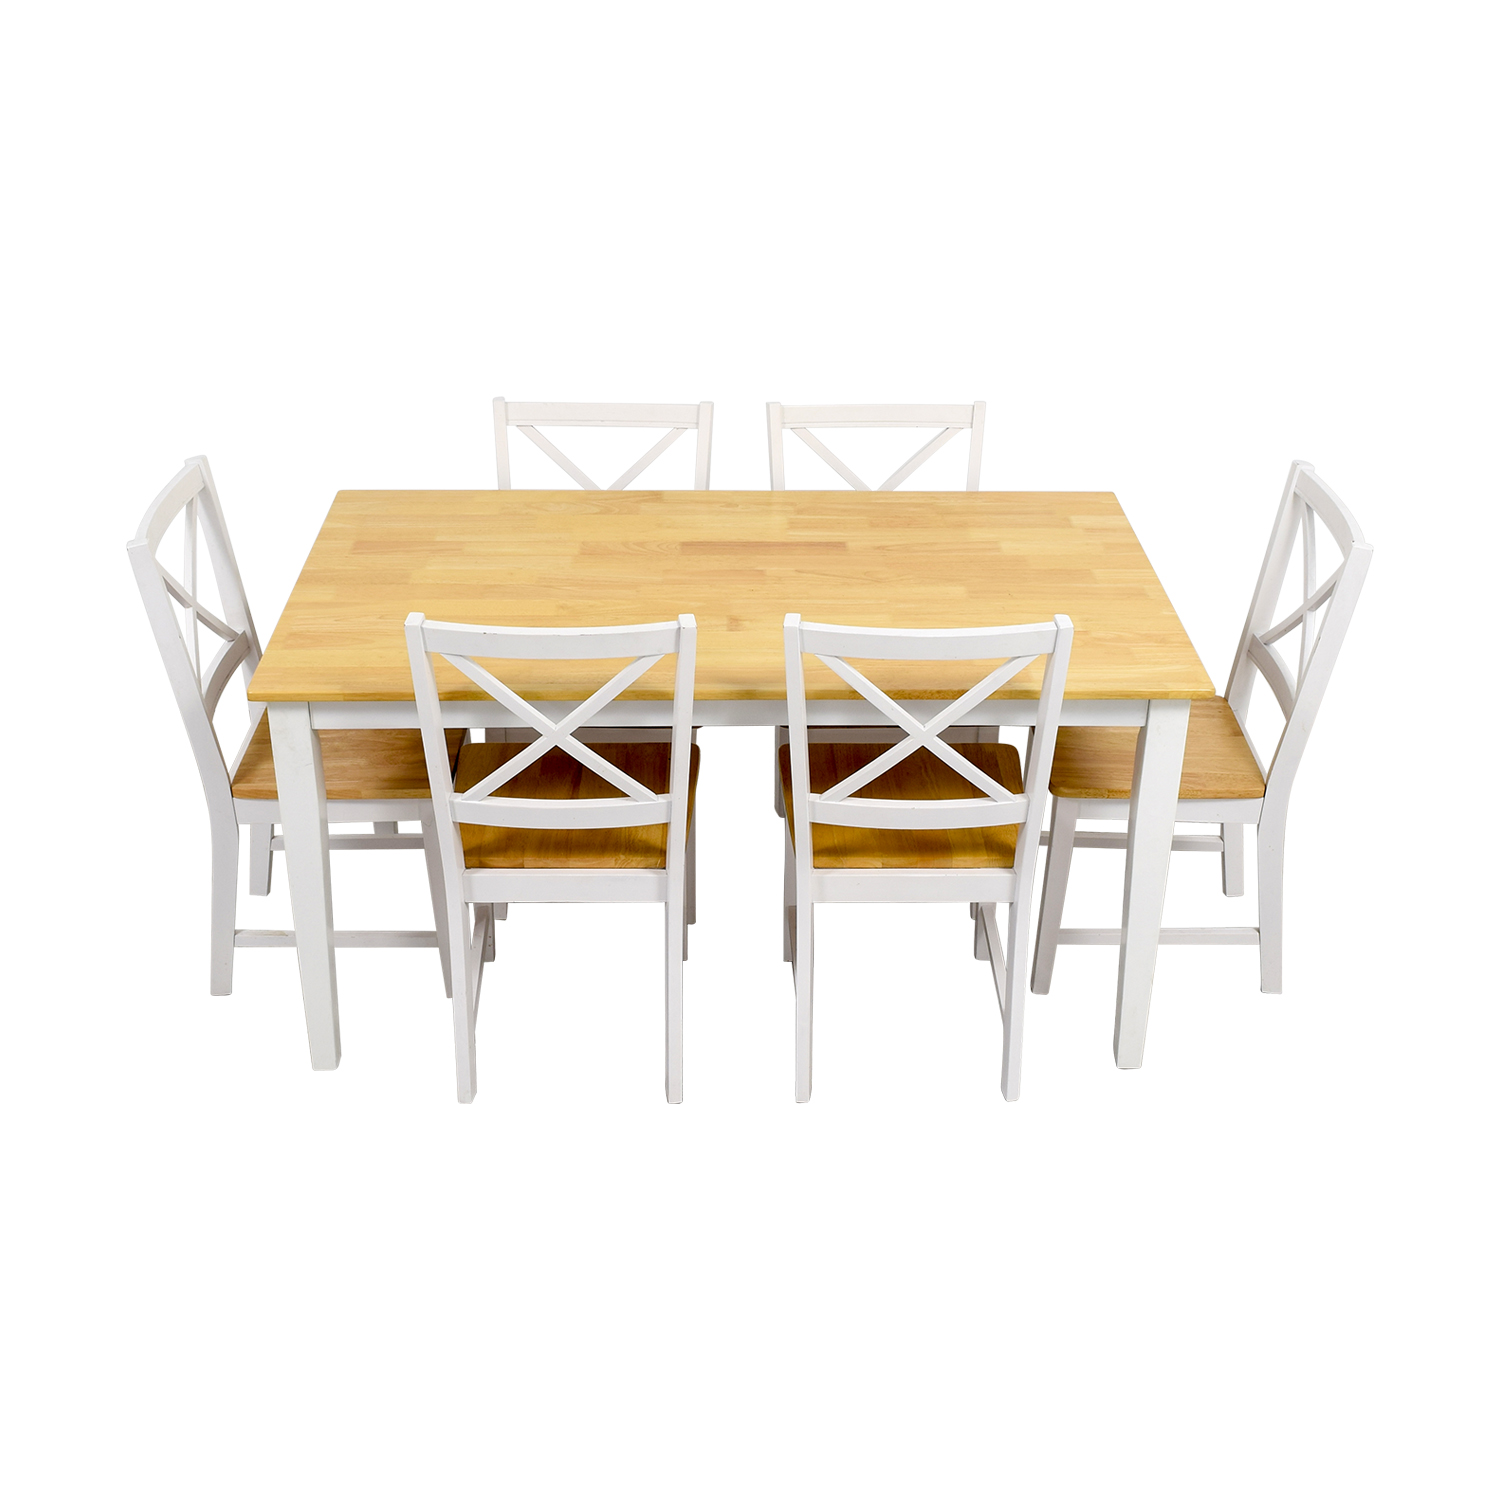 shop Beech Wood and White Dining Set online